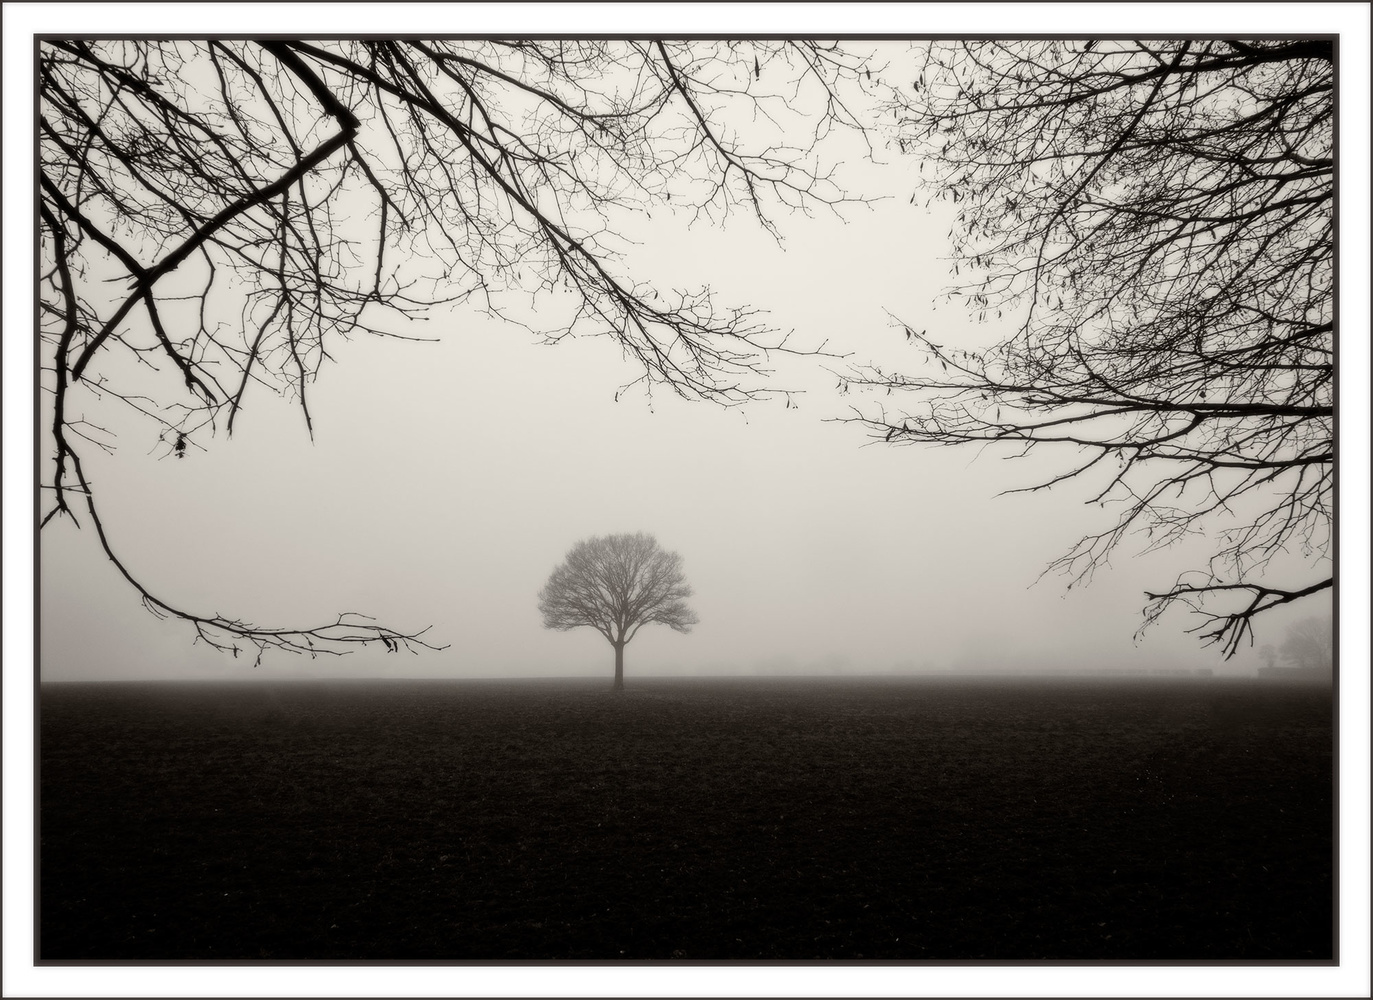 Winters Tree by Anthony Hepworth